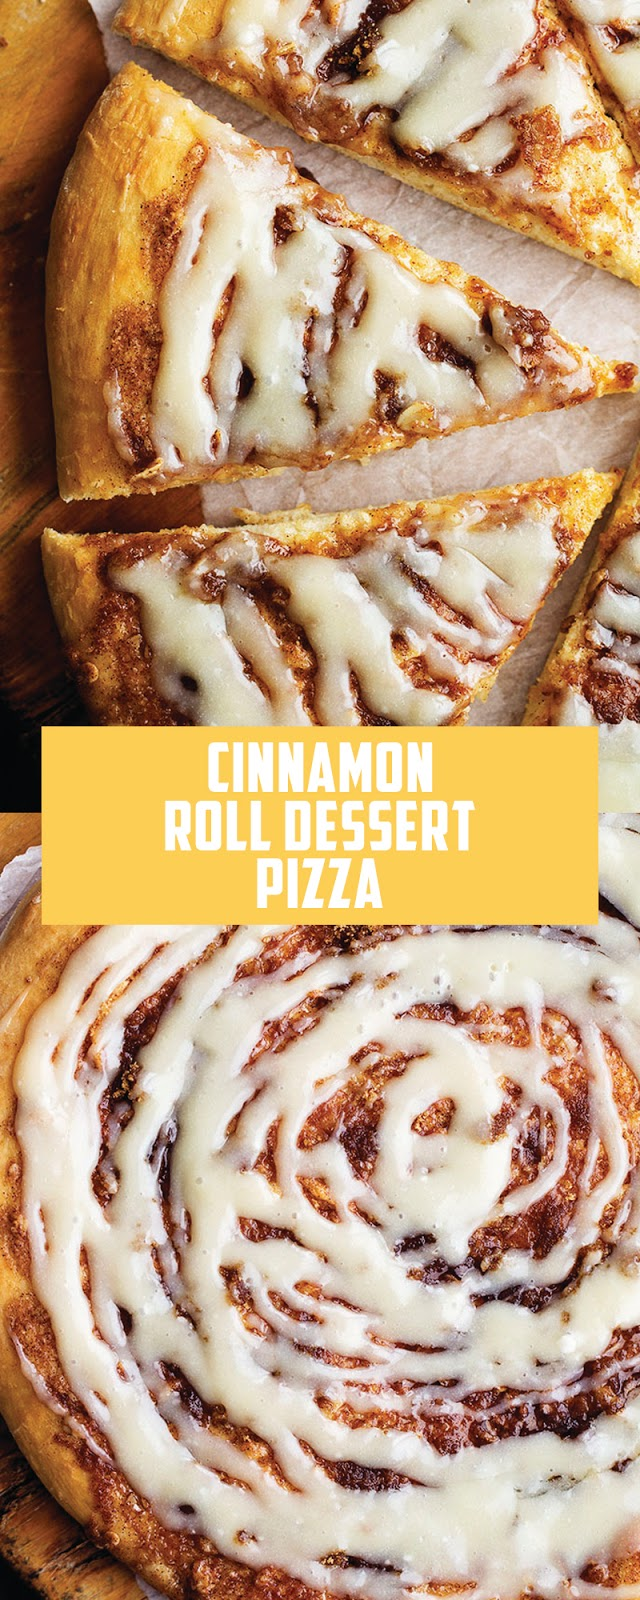 CINNAMON ROLL DESSERT PIZZA